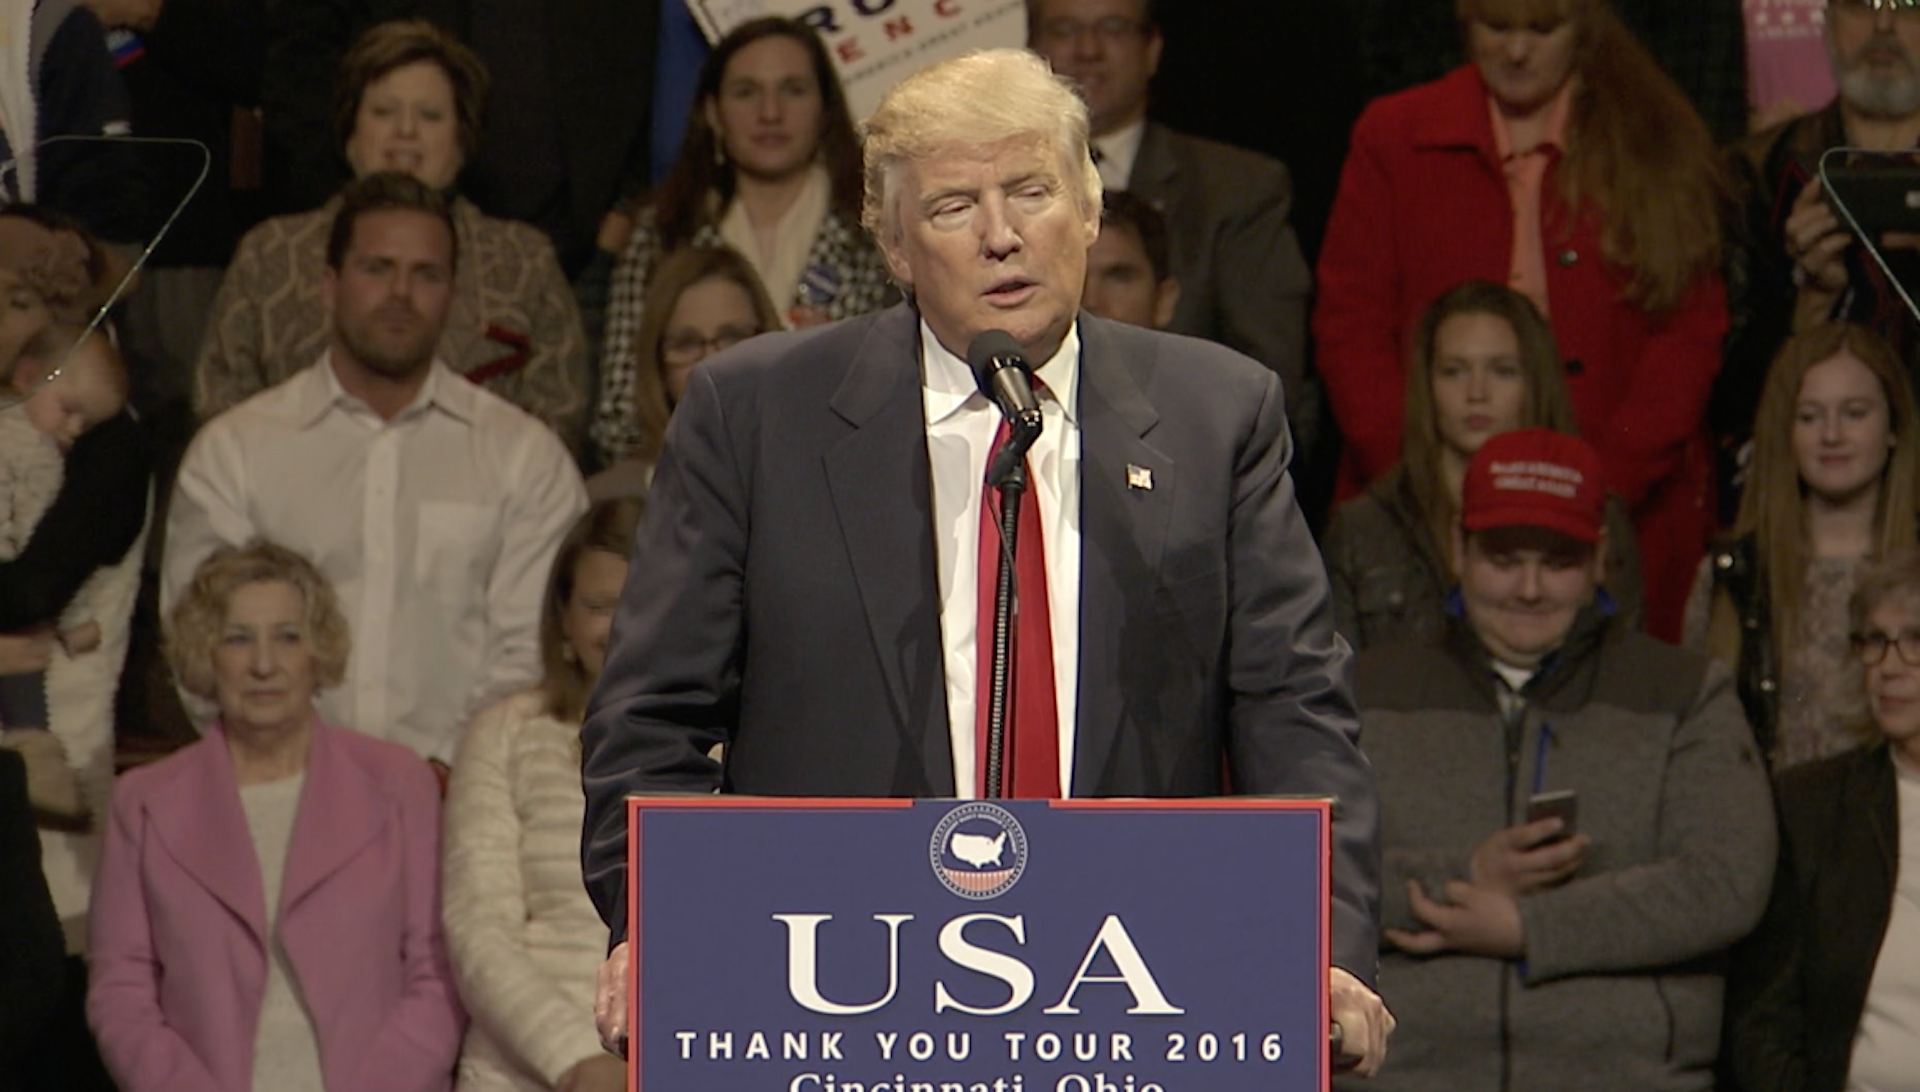 Trump Says 'Thank You' to Ohio During Victory Lap Tour